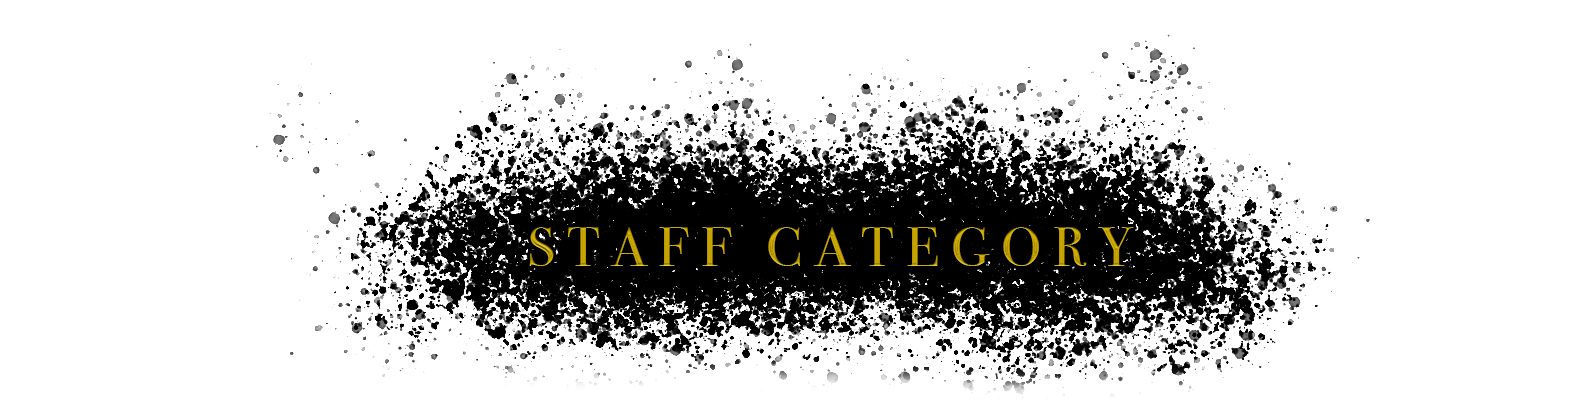 Staff_Category_.png